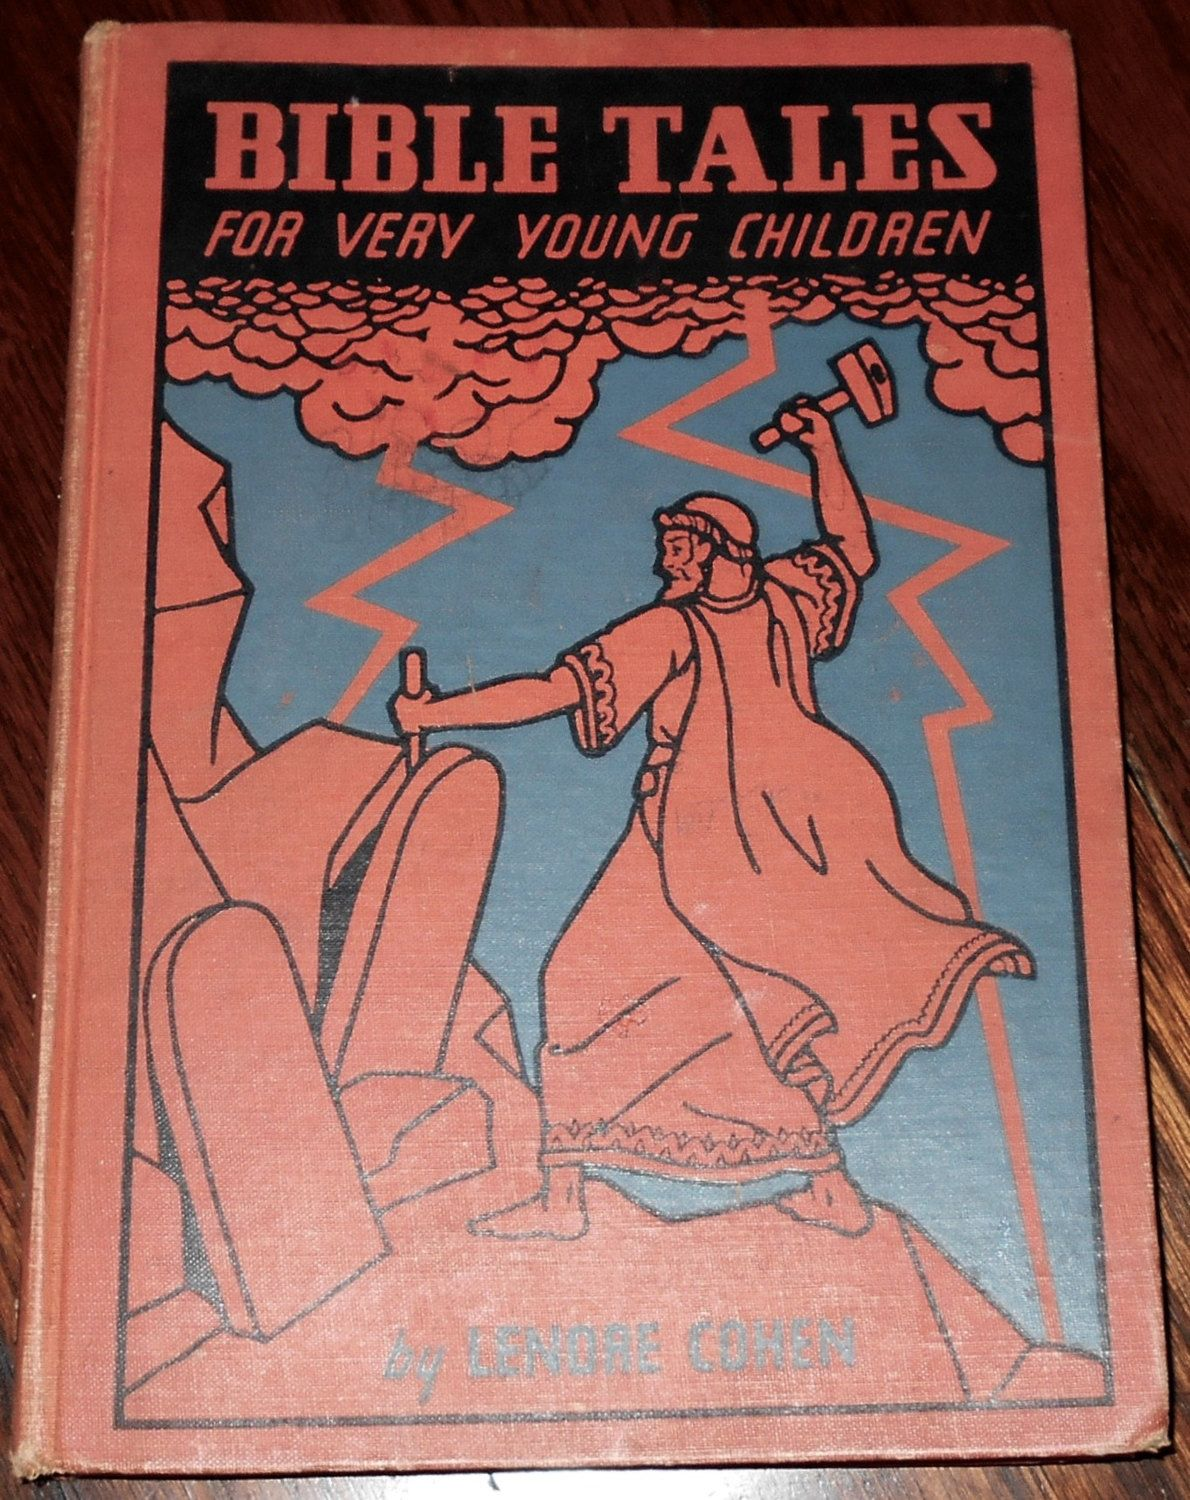 bible tales for very young children by lenore cohen 1934 by